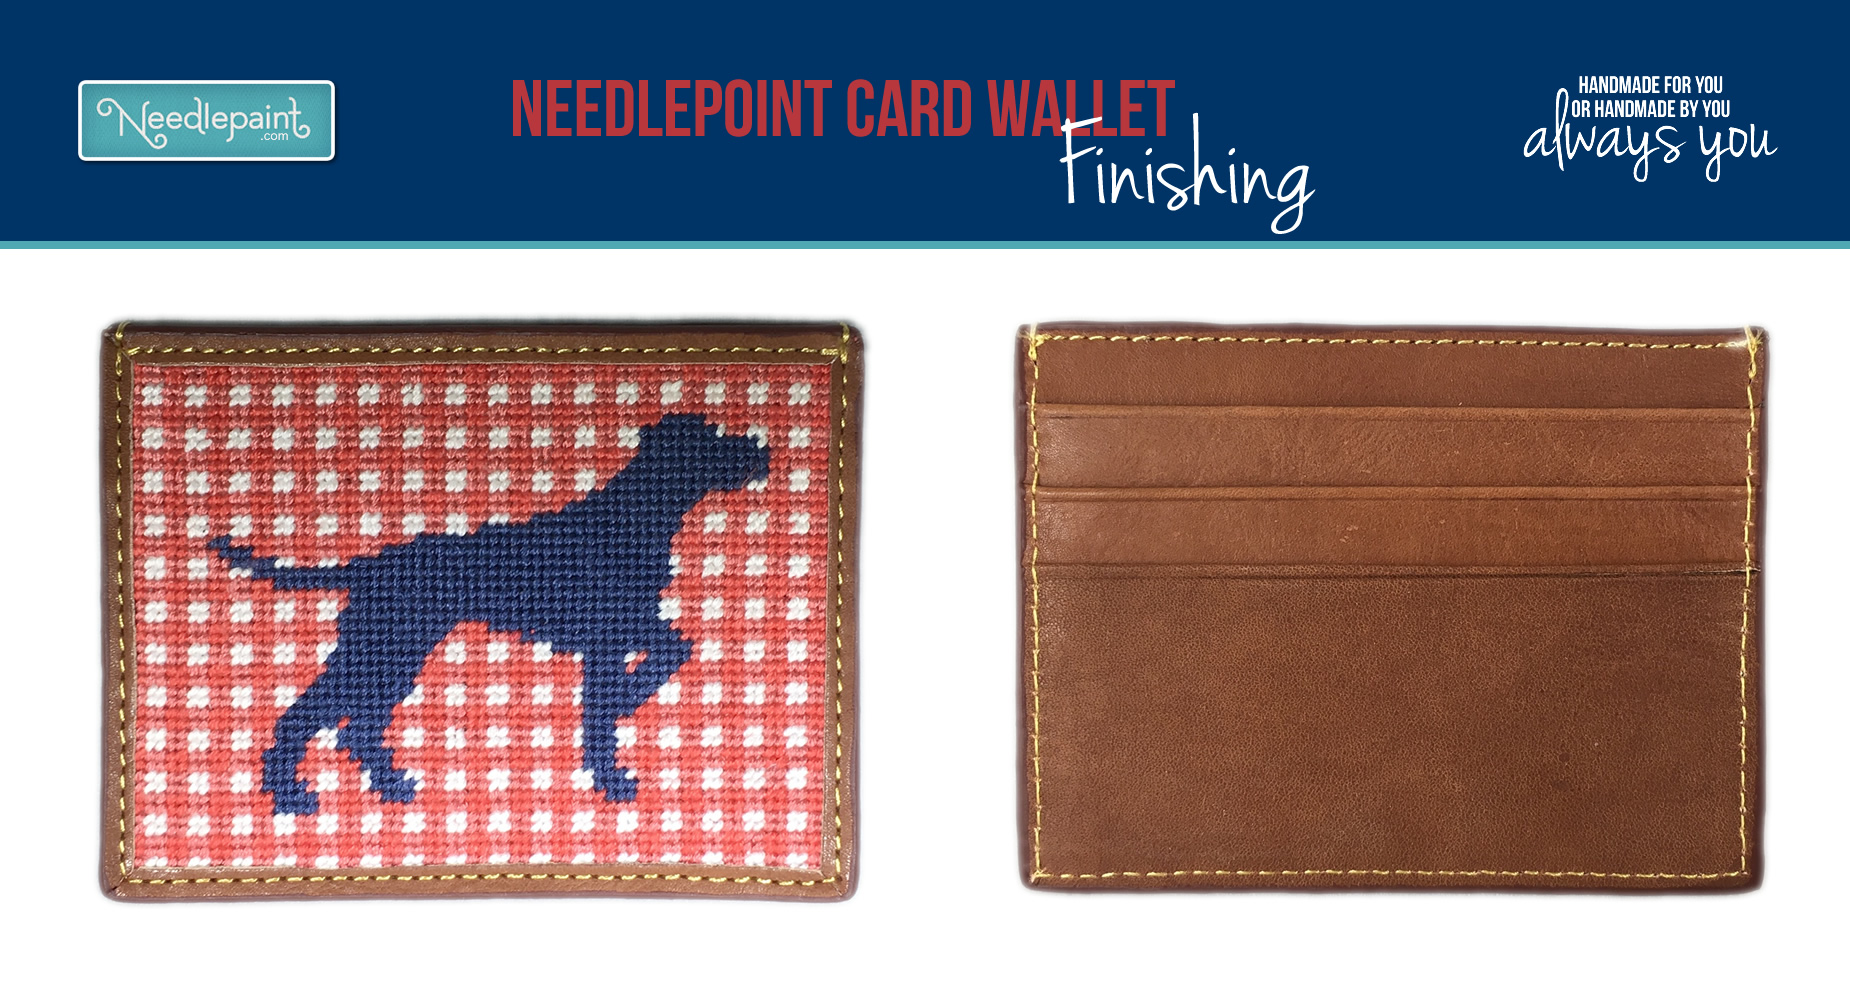 Needlepoint Card Wallet Finishing